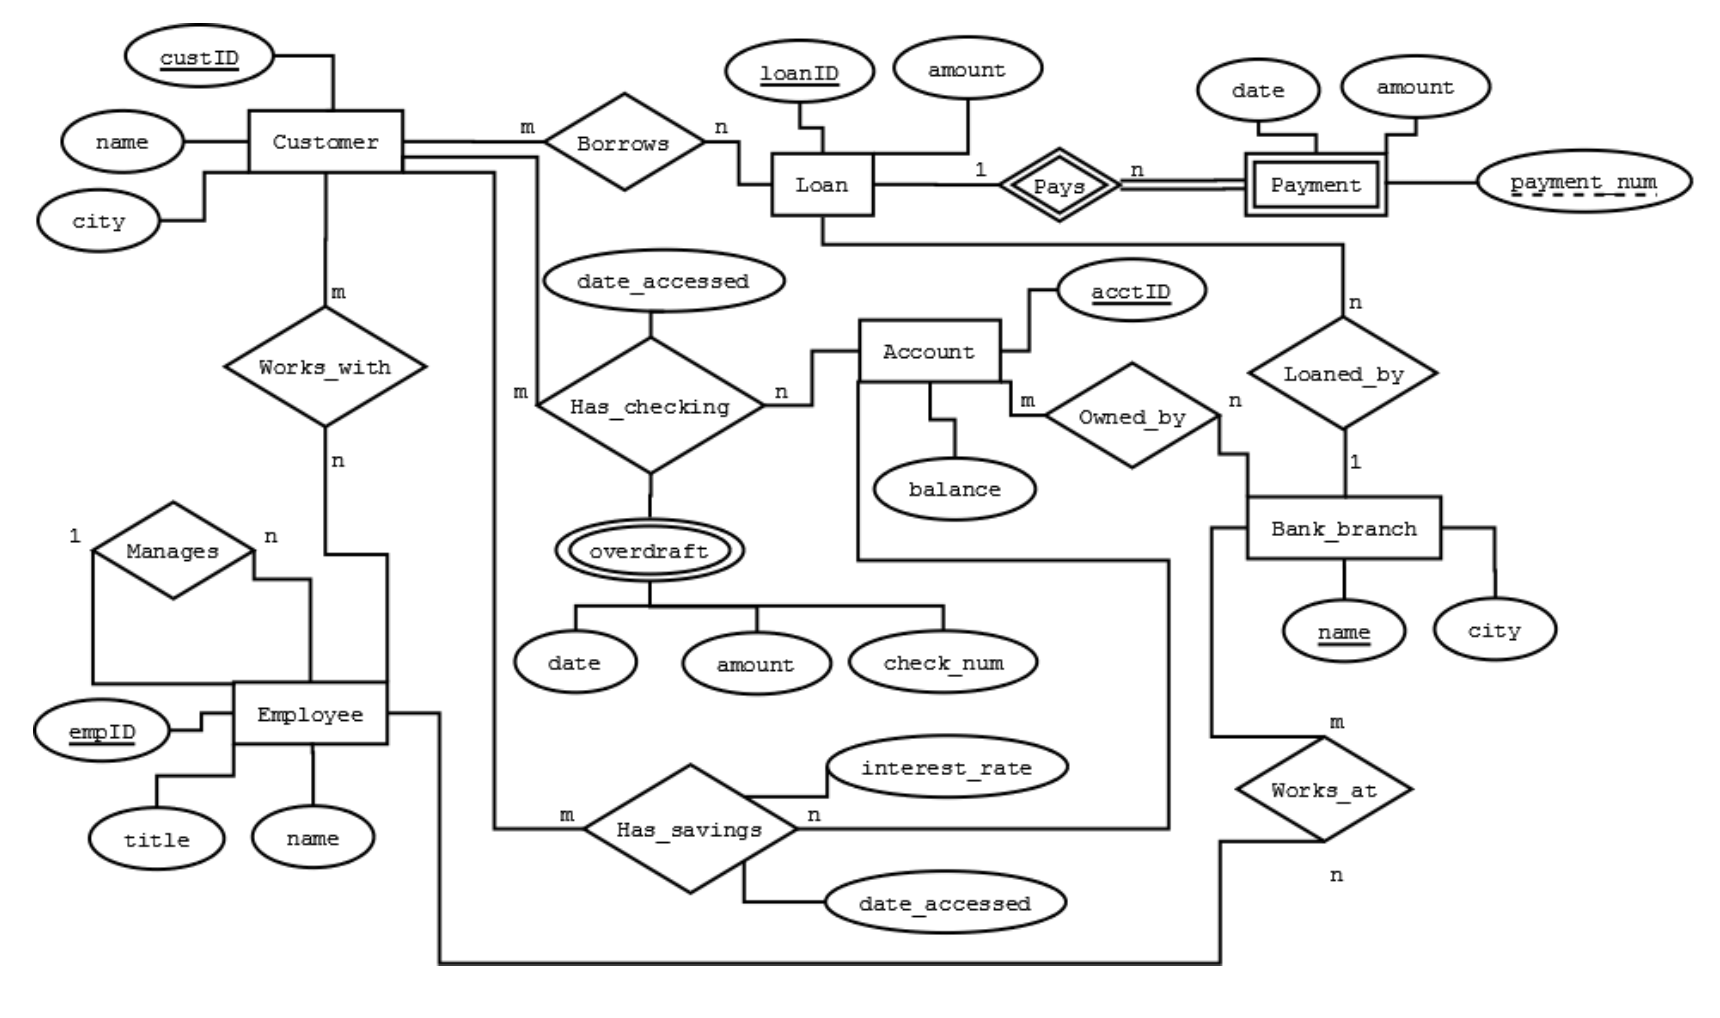 database er diagram for courier management system architecture library dbms and mysql question